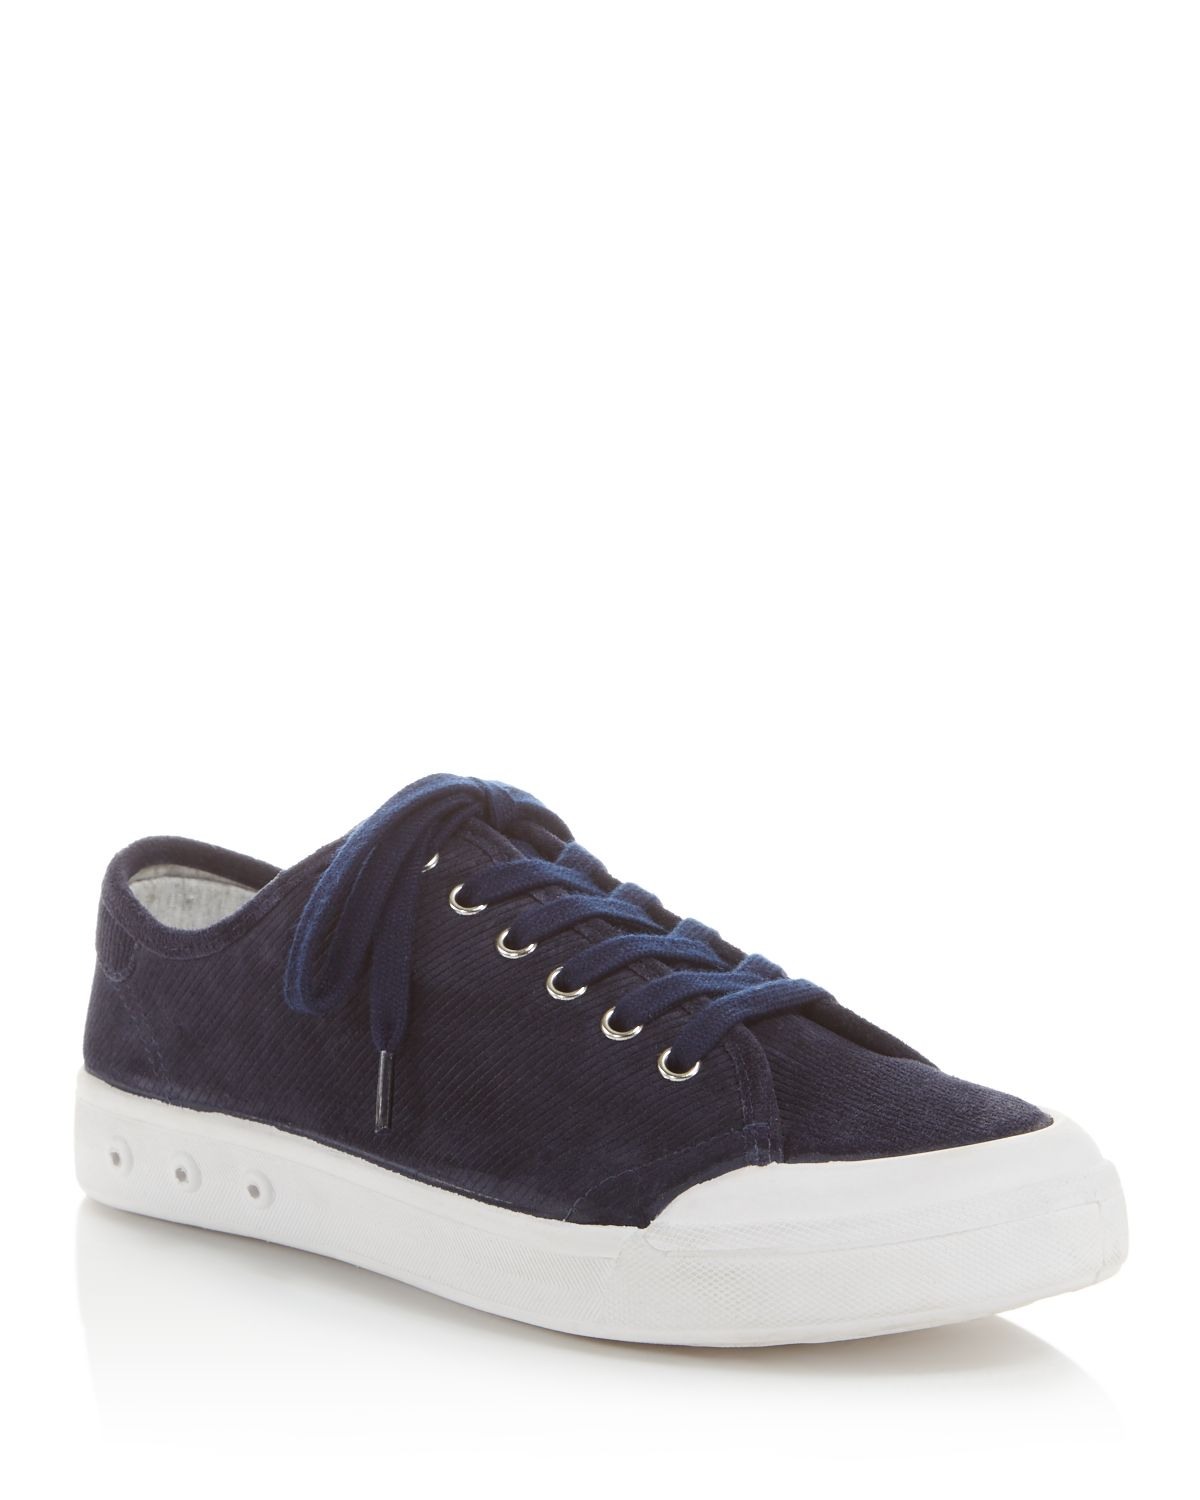 RAG&BONE Women's Standard Issue Corduroy Lace Up Sneakers - 100% Exclusive